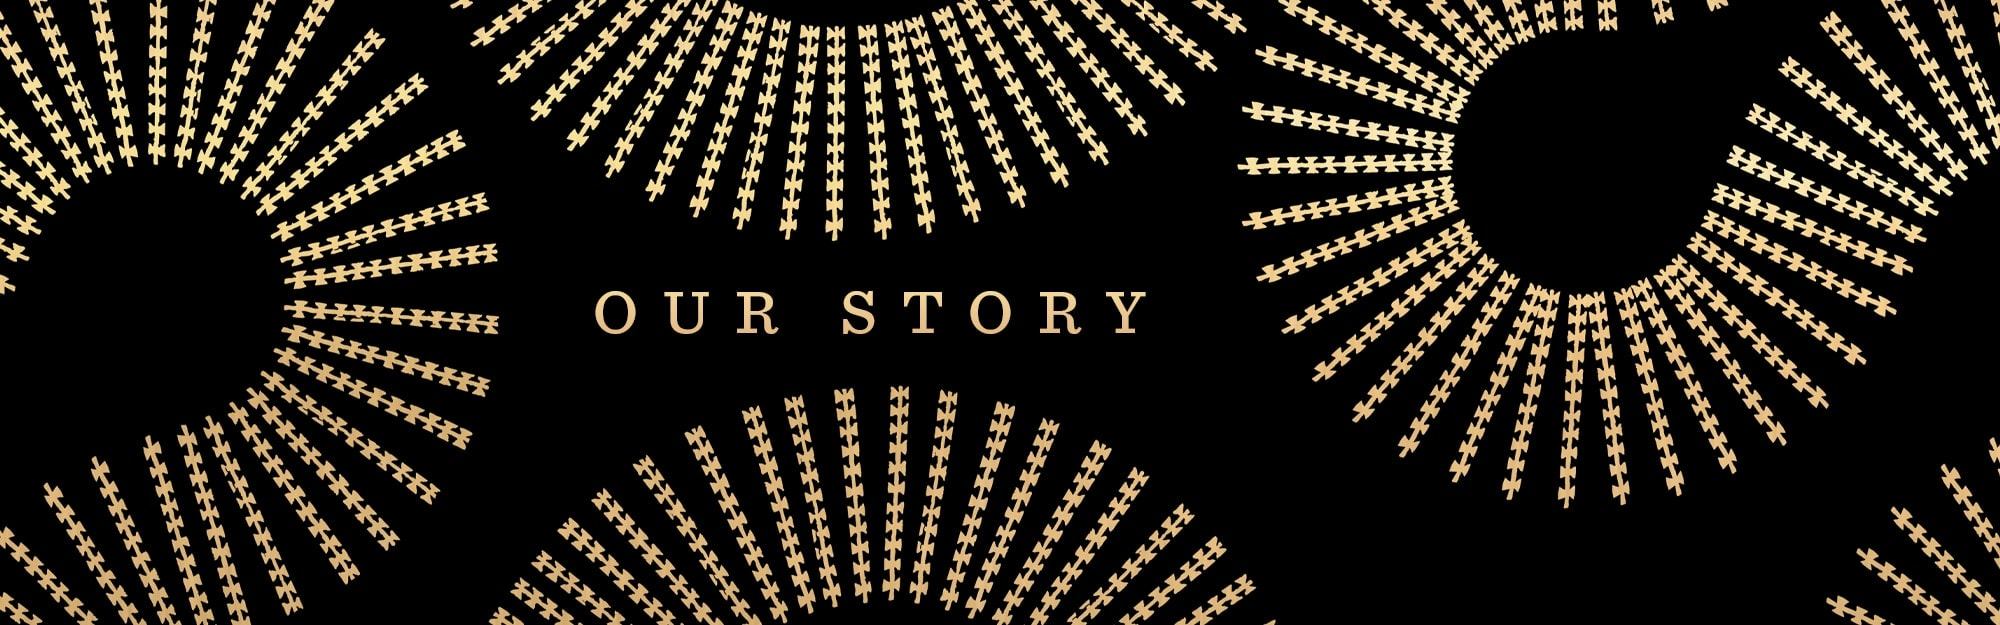 Our Story Banner on Black Background